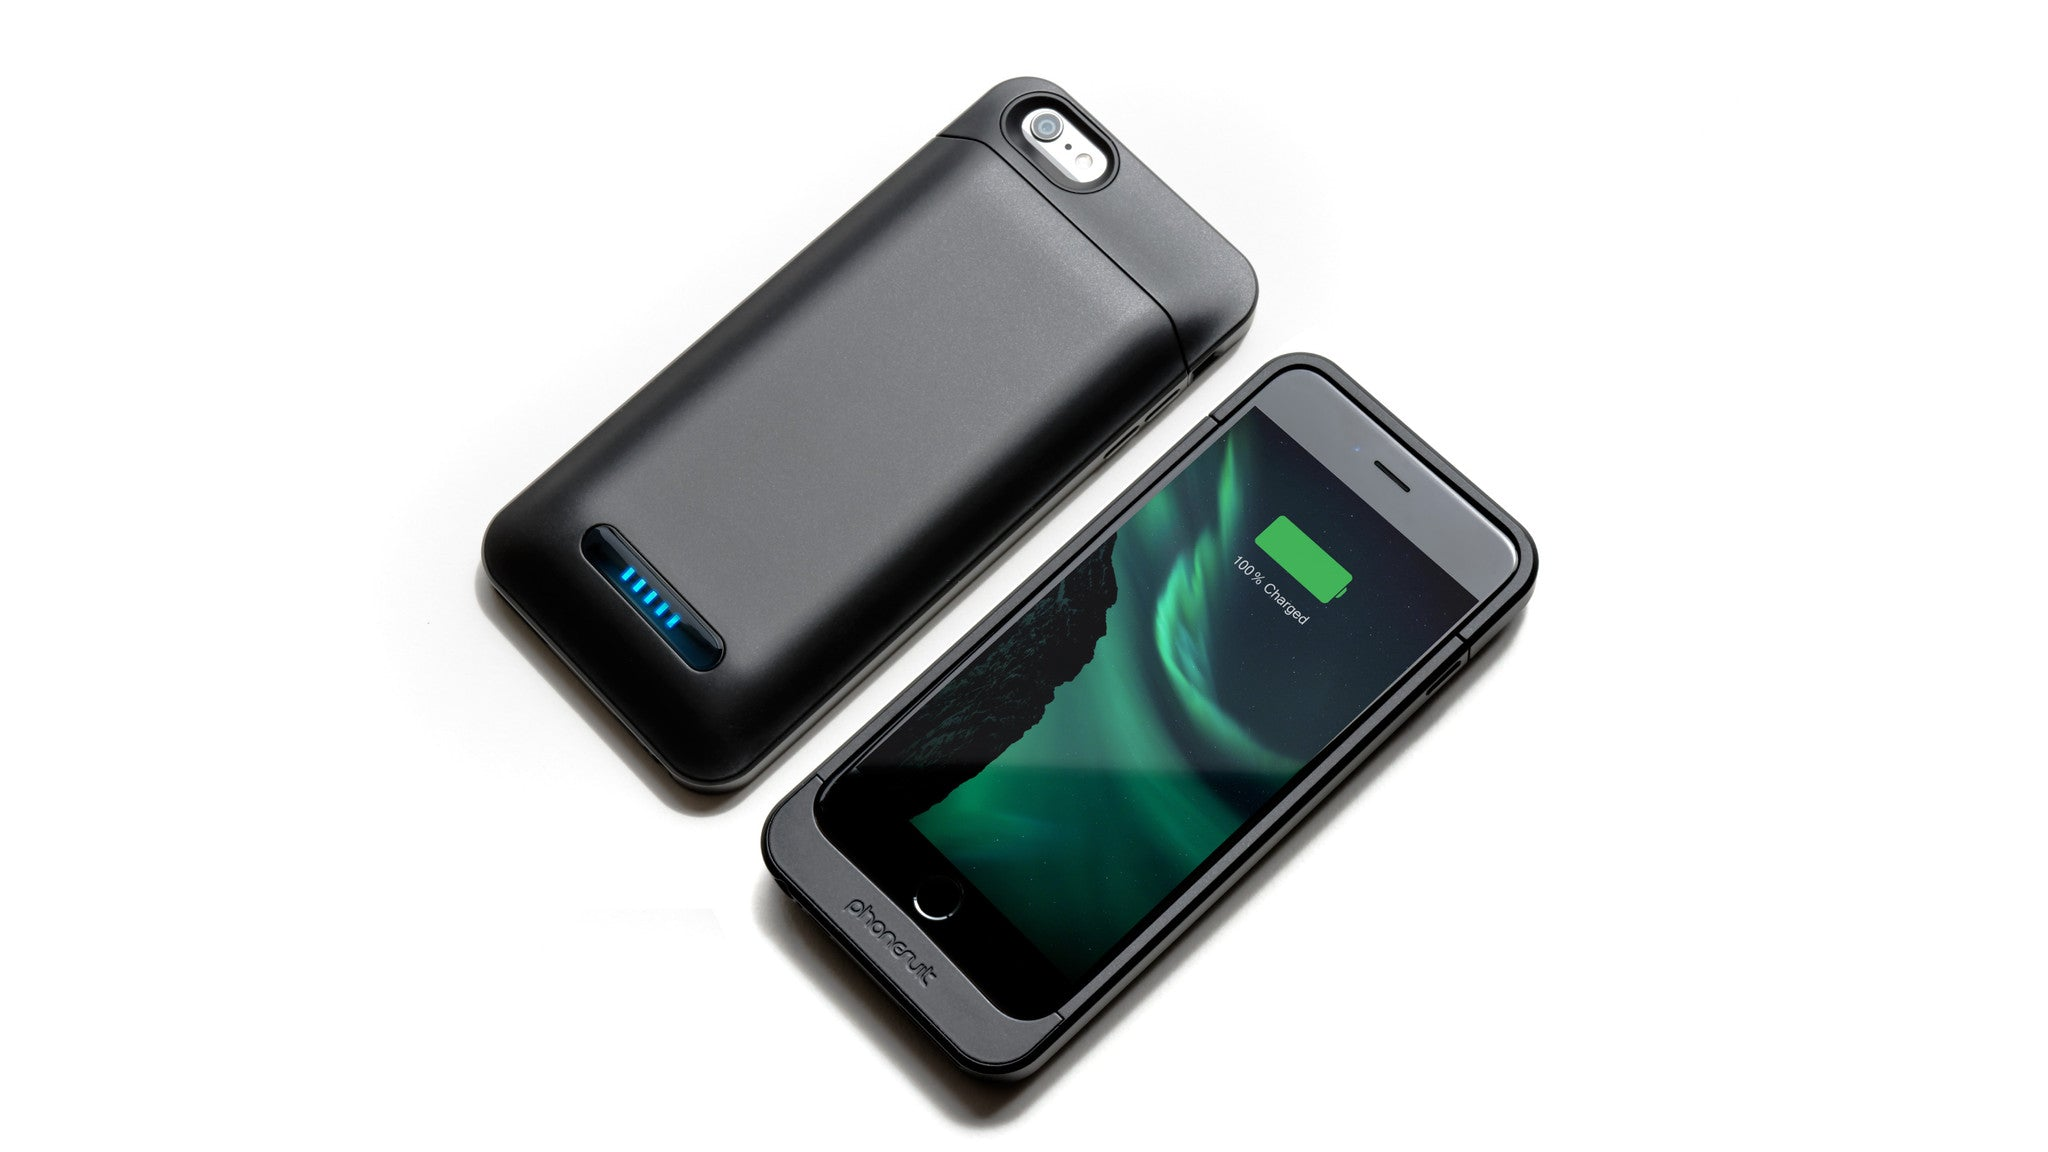 100% authentic c1bd9 a796f PhoneSuit Elite 6 Plus Battery Case for iPhone 6/6S Plus